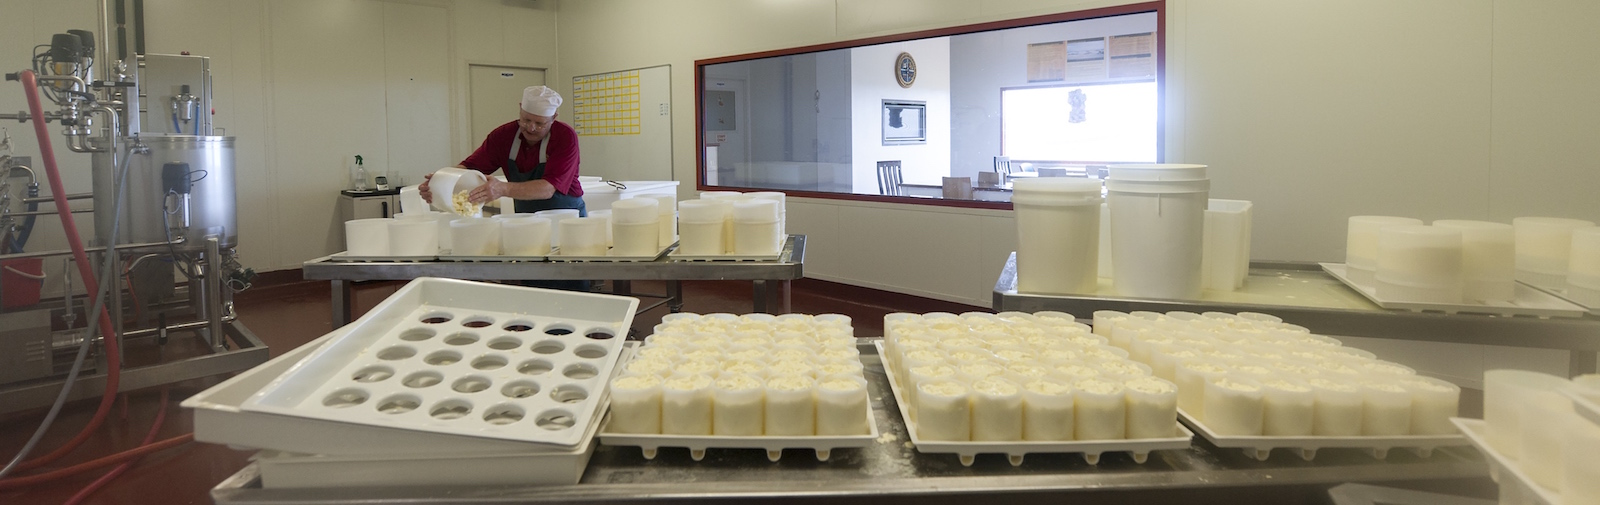 Apostle Whey Cheese Making